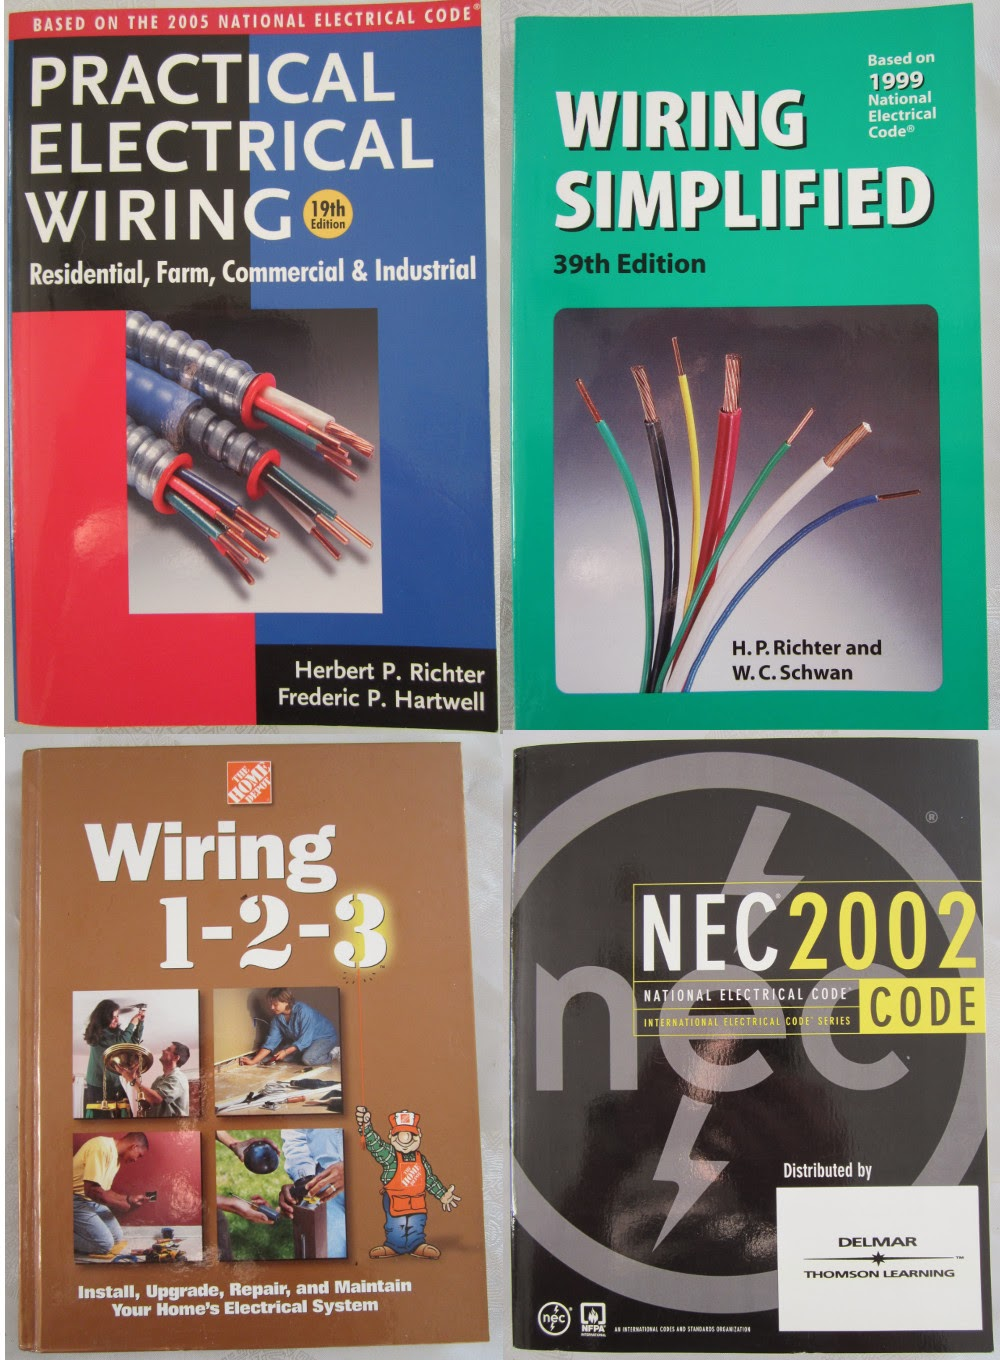 120v equipment in the uk books 120v us electrical wiring rh 120vuk blogspot com electrical wiring books free download electrical wiring books in tamil